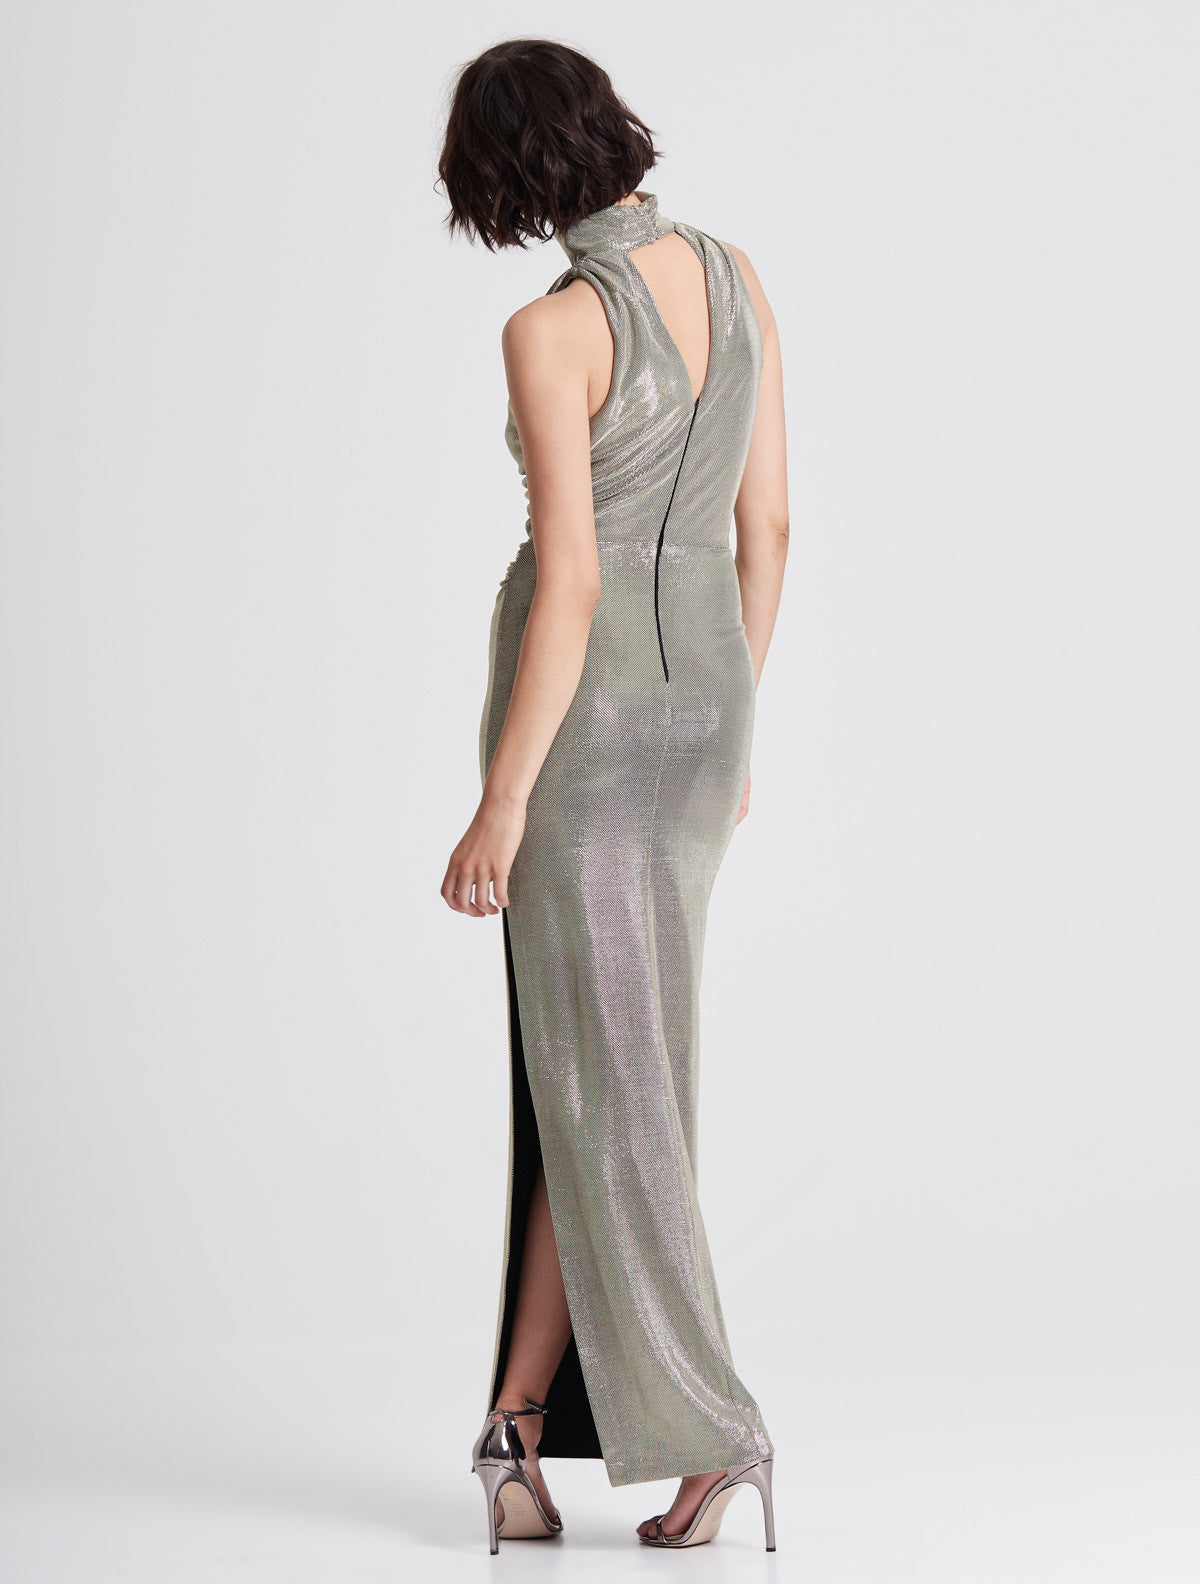 Draped Neck Metallic Knit Gown - Halston